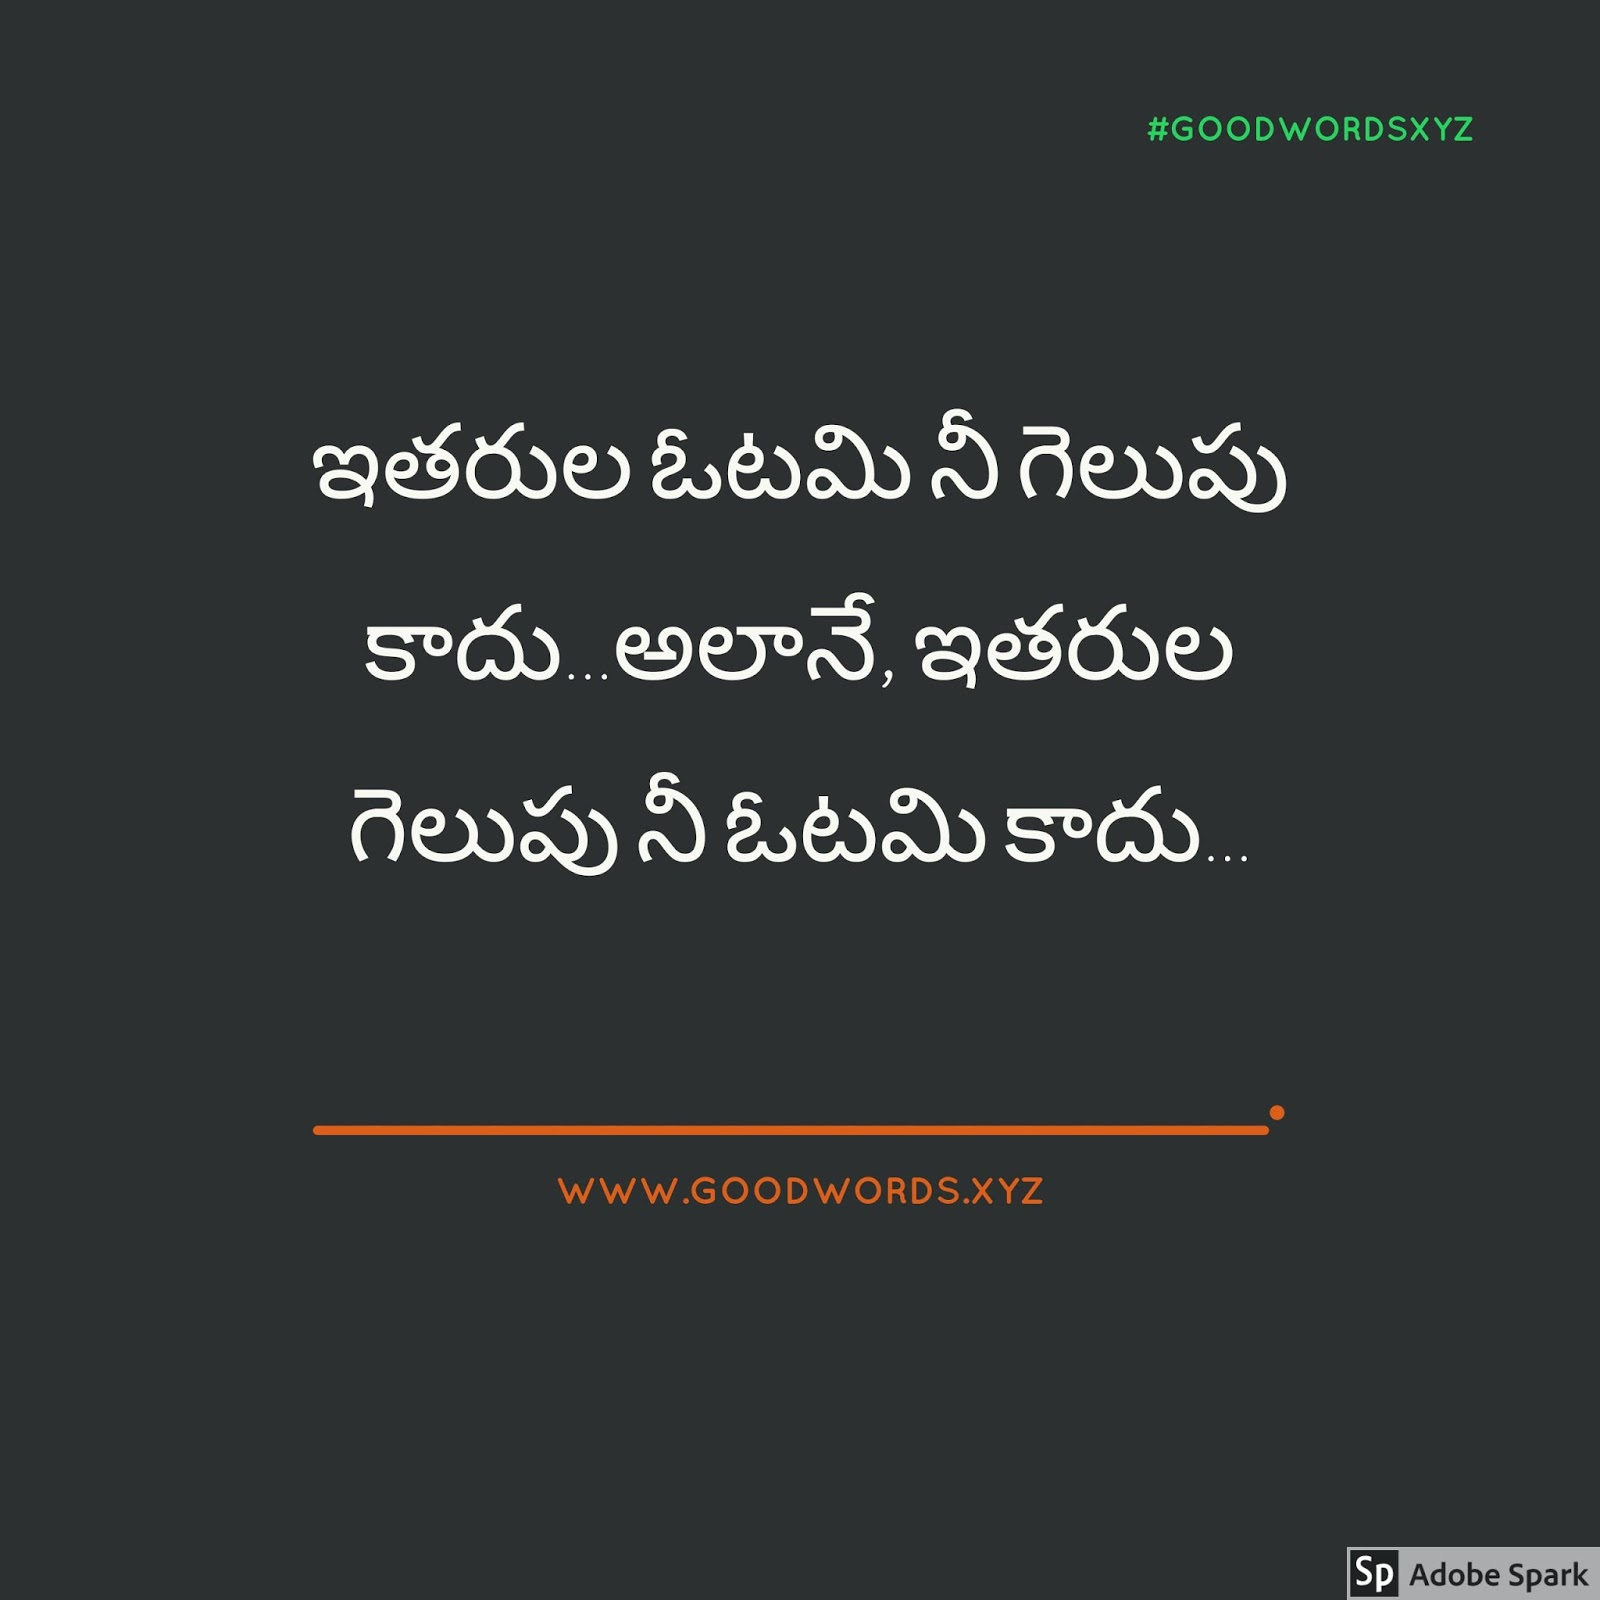 Telugu picture messages good words about success and failure in good words about success and failure in telugu kristyandbryce Images